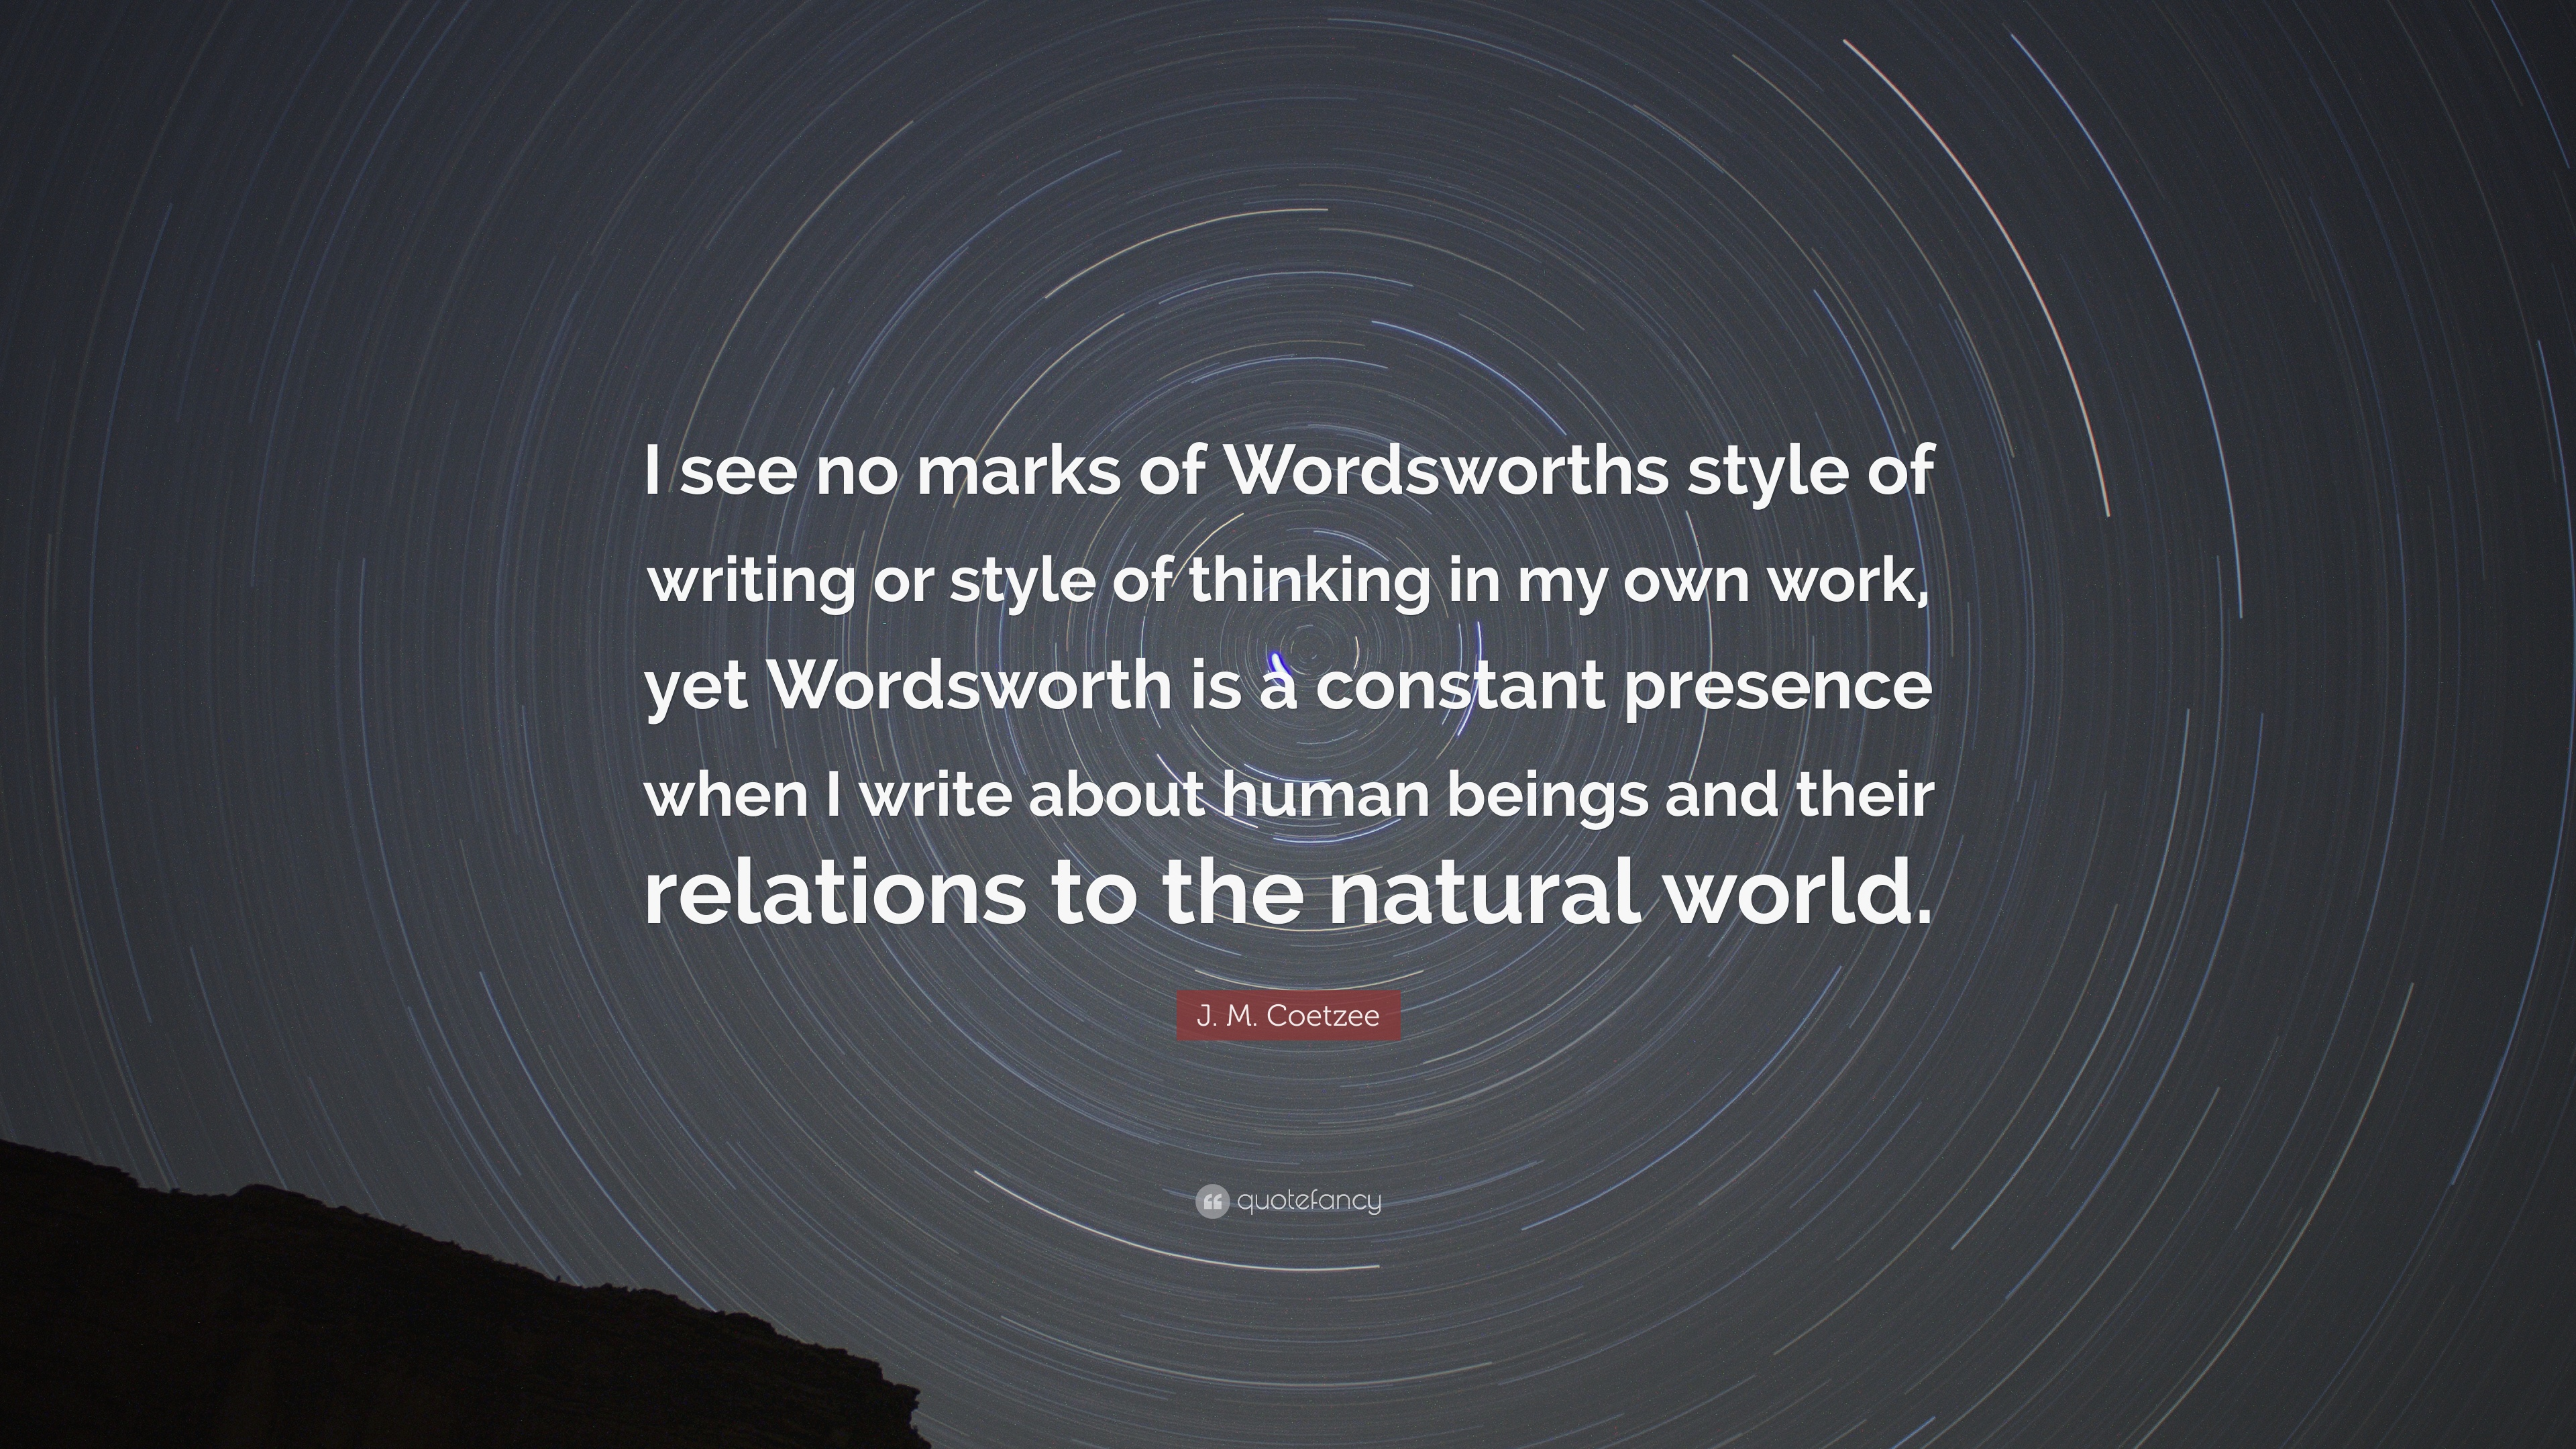 an analysis of wordsworths style of writing The other day patrick j keane dashed off 10,000 words on wordsworth's daffodils and sent them to me wondering if i might want them for numéro cinq --- 10,000 words.